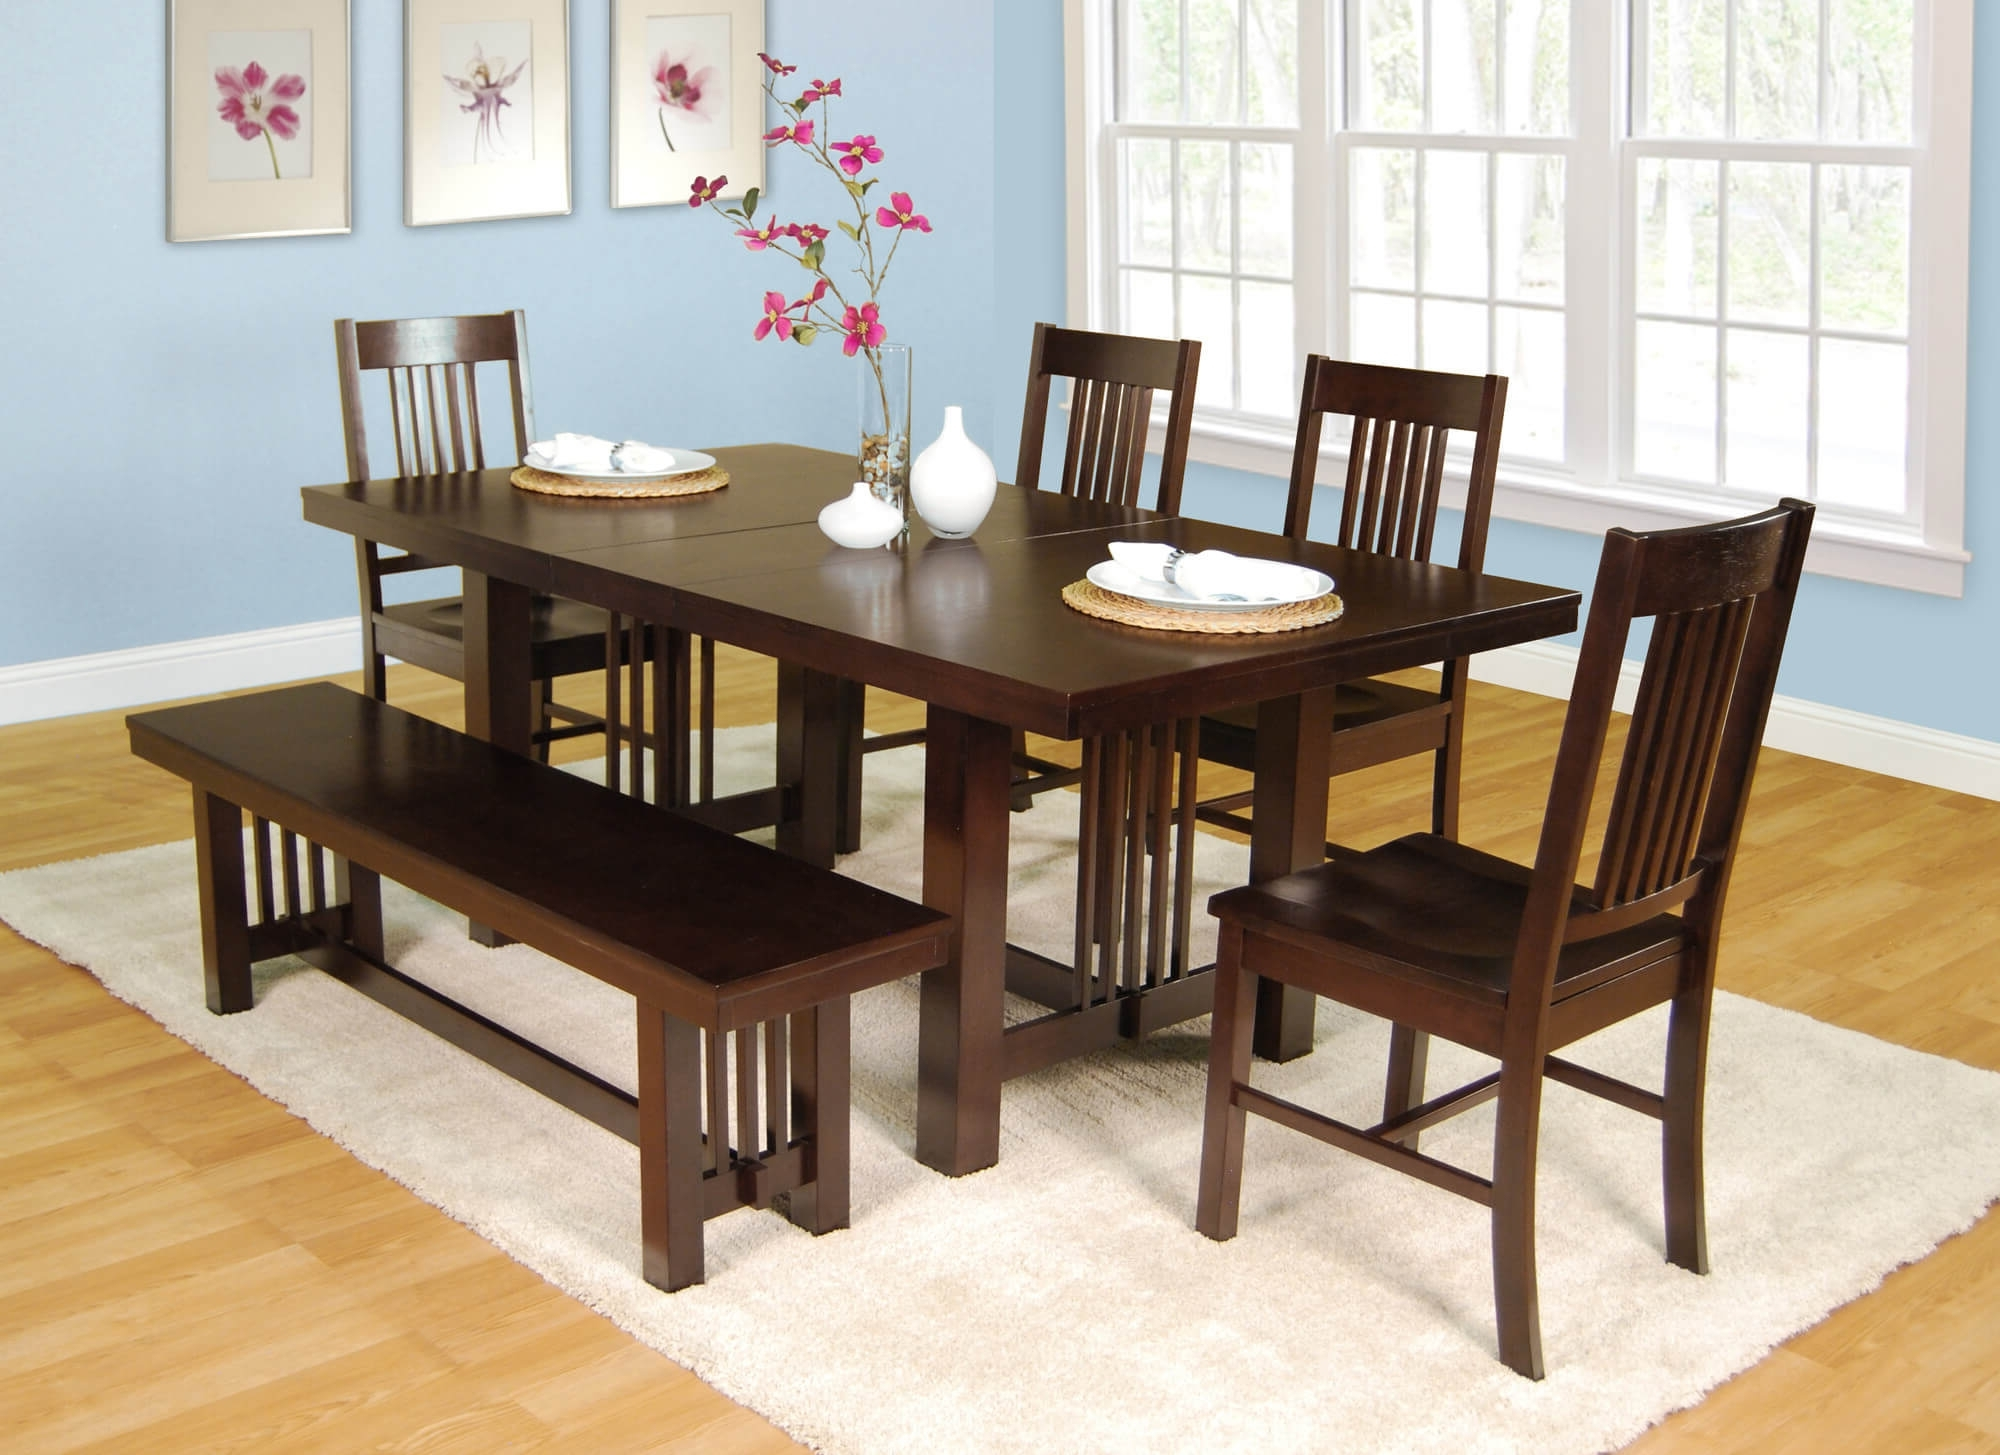 Widely Used 26 Dining Room Sets (Big And Small) With Bench Seating (2018) With Regard To Small Dining Tables And Bench Sets (View 25 of 25)